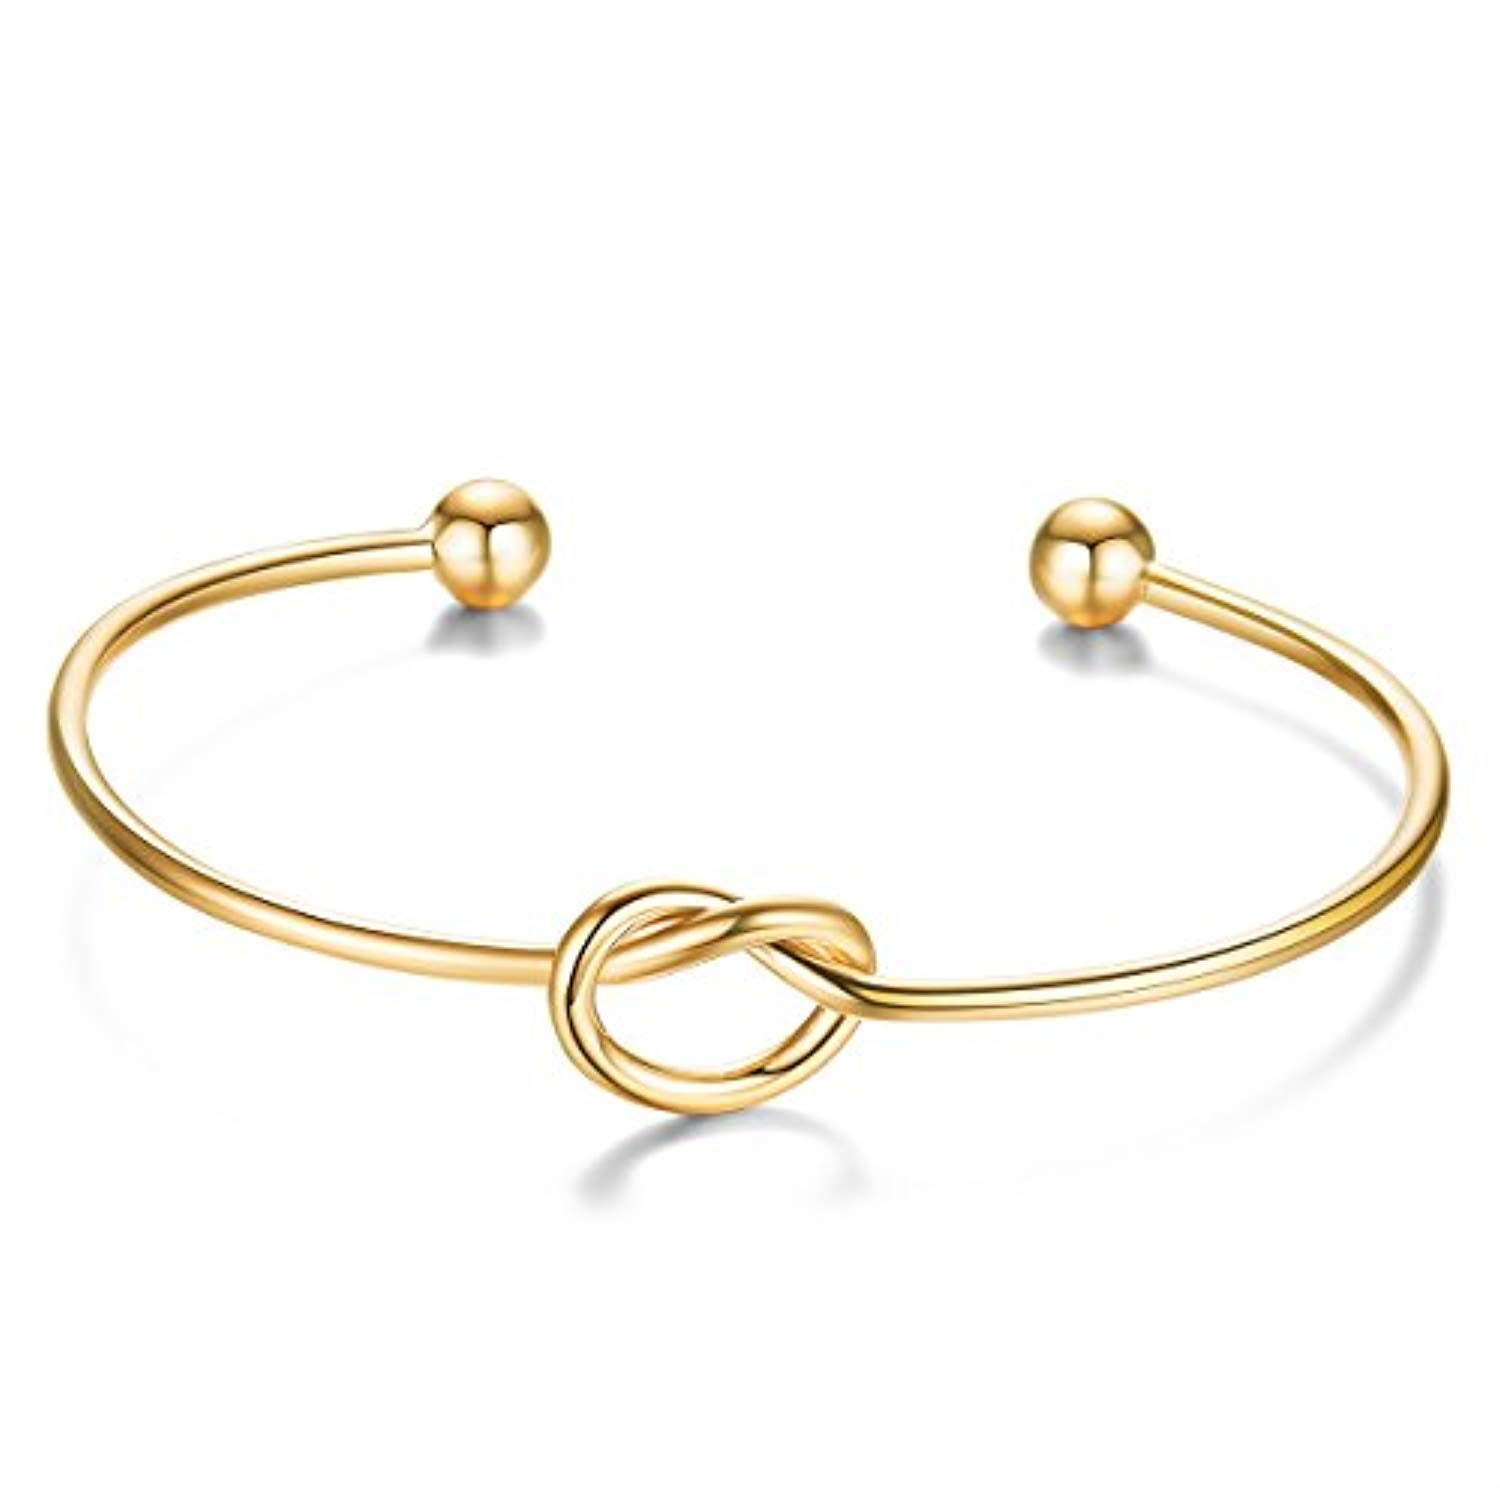 Simple Love Knot Bracelet Tie The Knot Cuff Bangle 925 Silver Bangle Bracelet for Women, Rose Gold